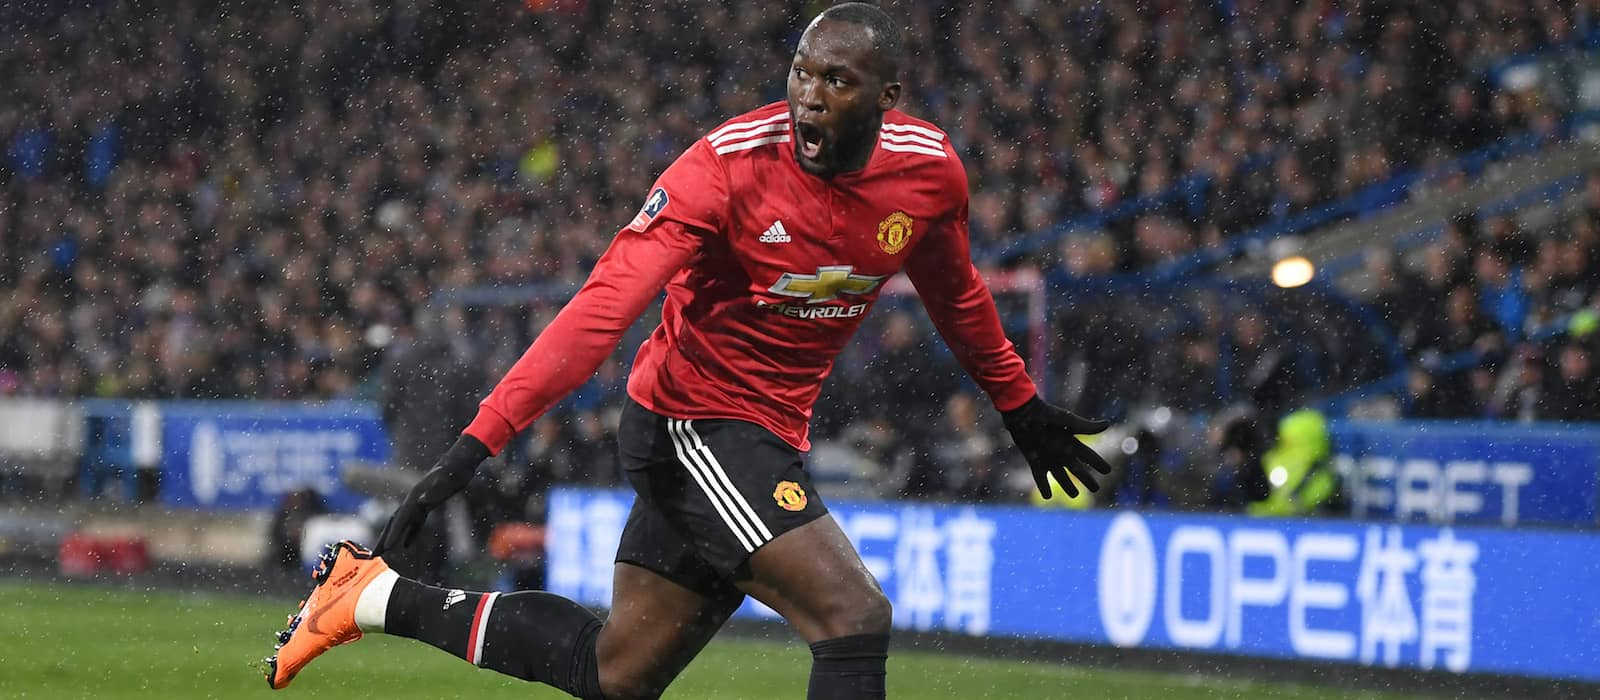 Alan Shearer: Manchester United star Romelu Lukaku will improve even more